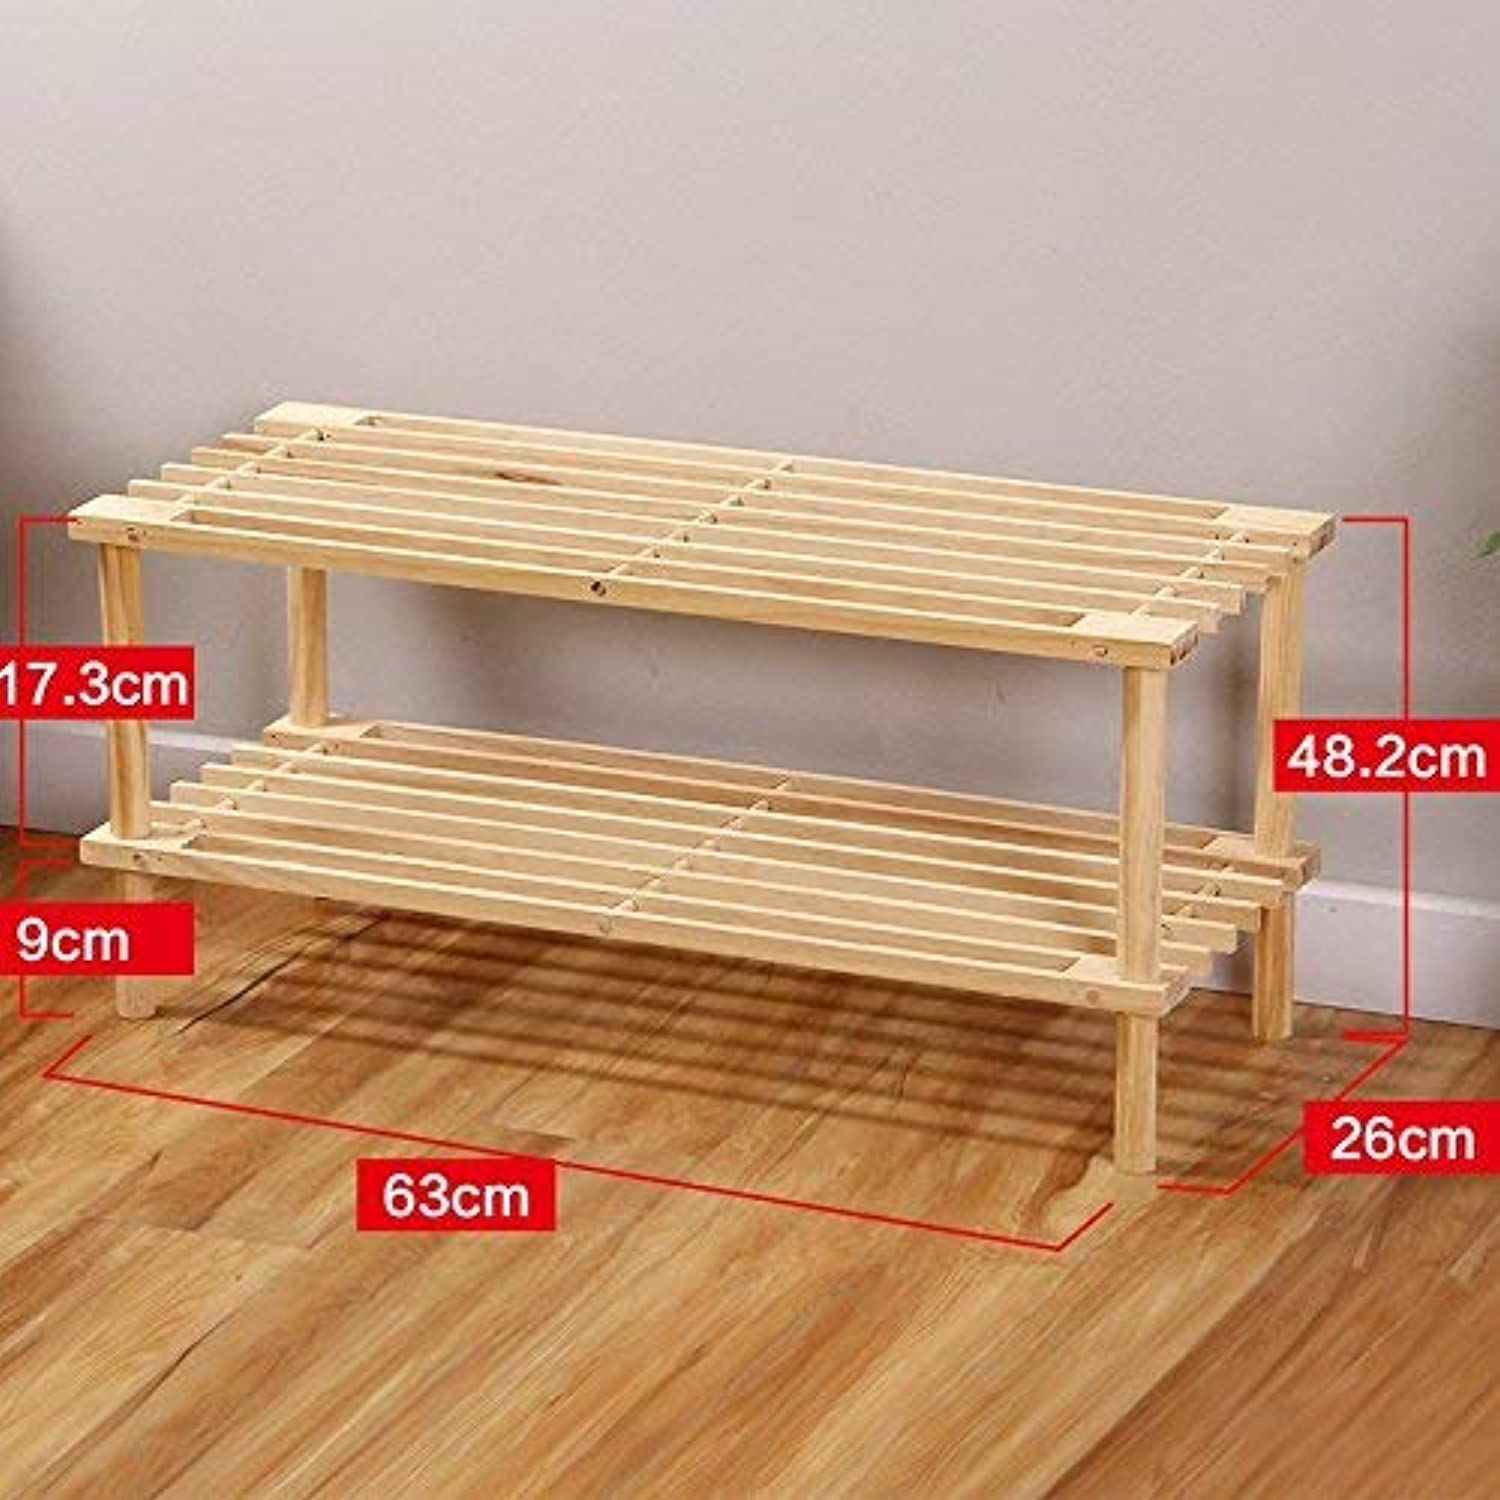 SED Home Door Living Room shoes Rack Multi-Layer,2-Tier Solid Wood Storage Sort Out Entrance Foyer Simple Modern Space Saving Bookshelf Multi-Function Storage Shelf shoes Cabinet